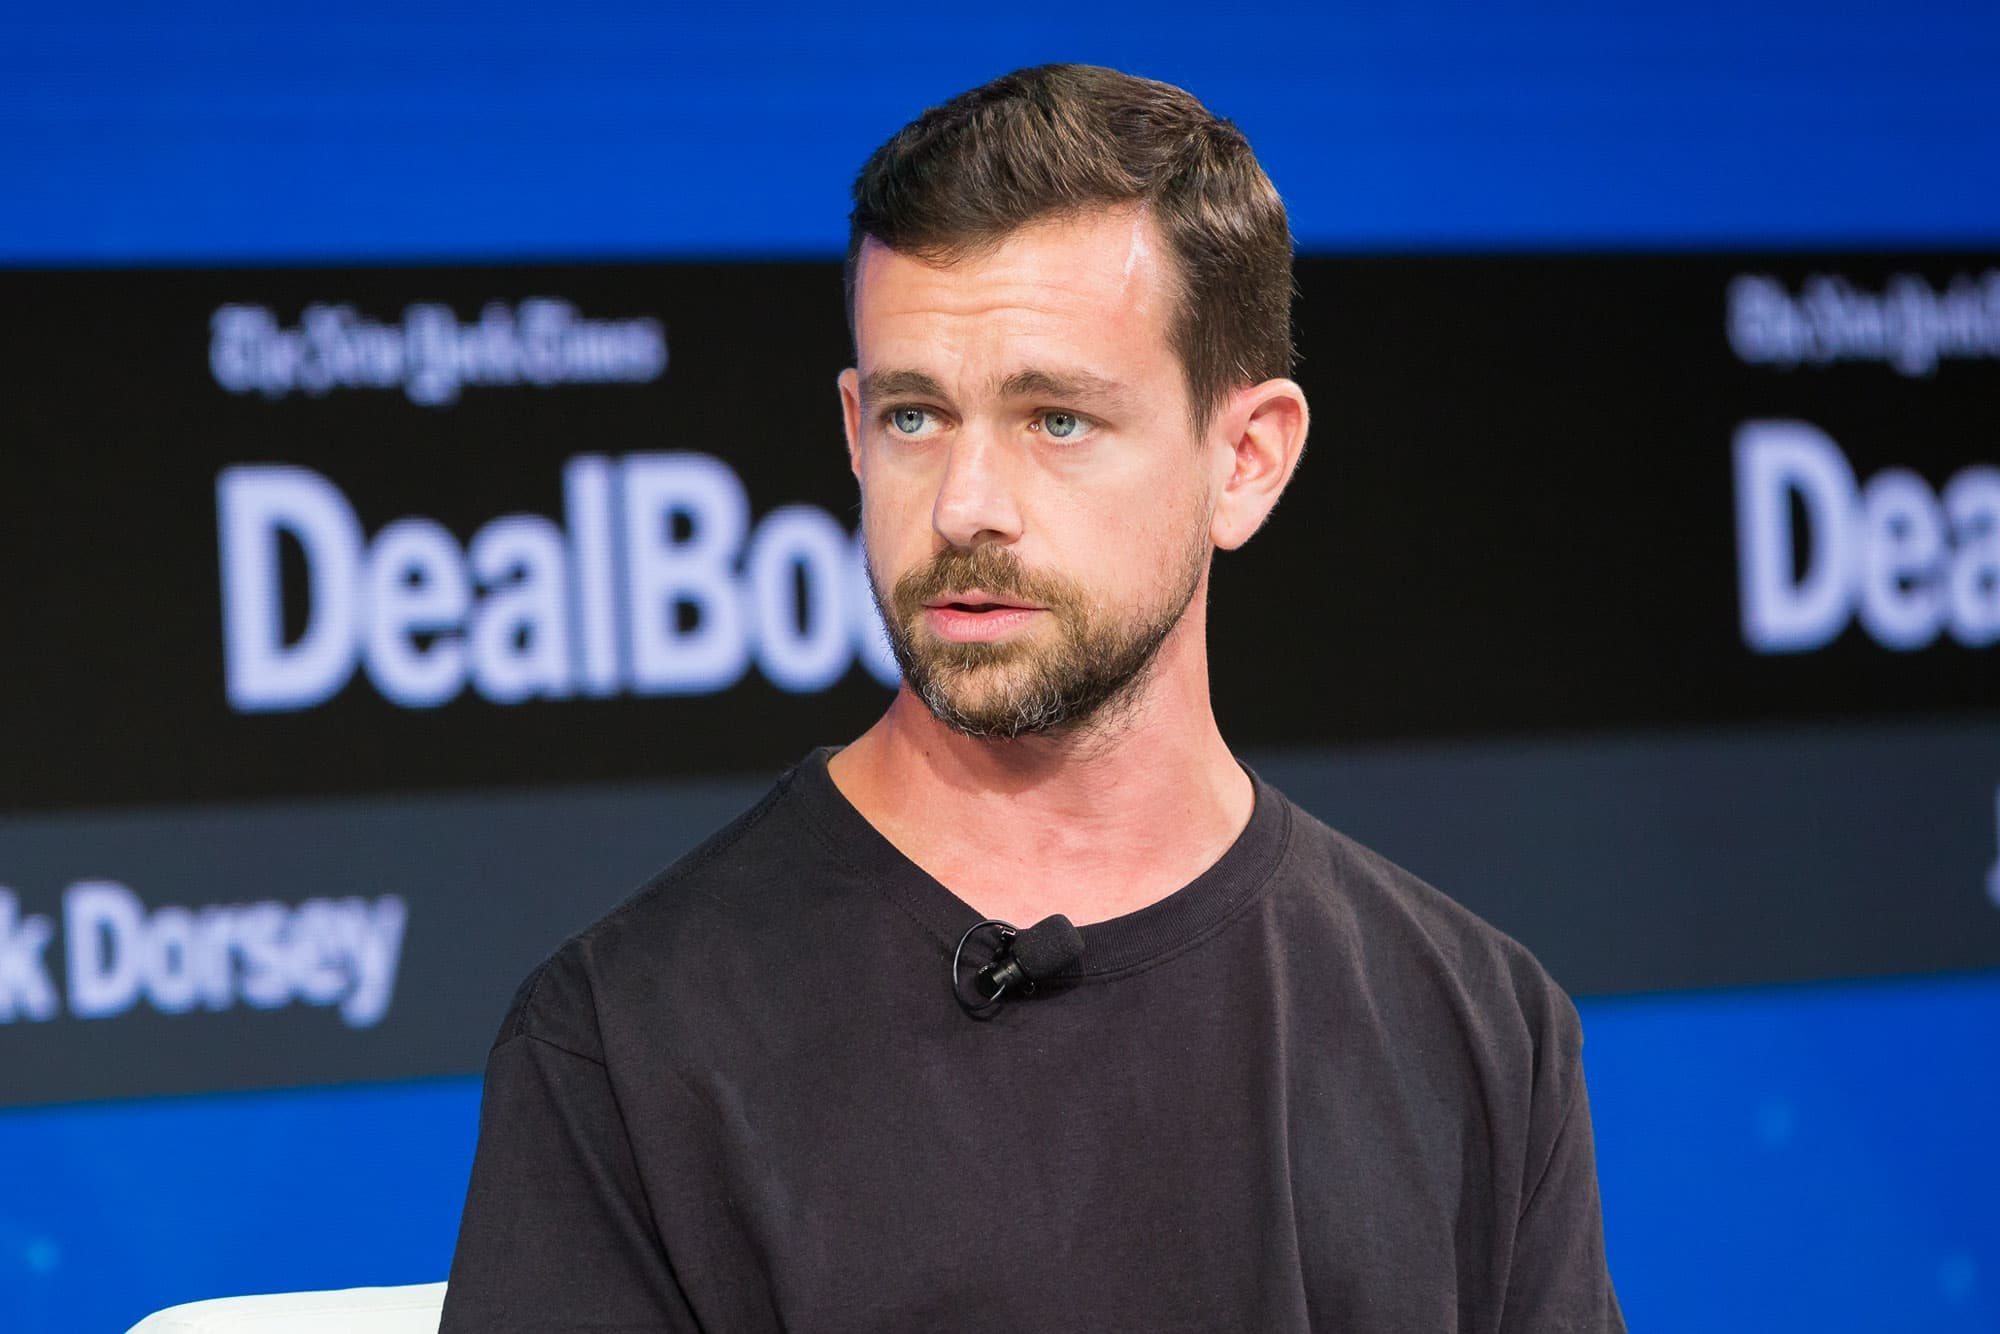 Jack Dorsey Ceo Of Twitter And Square Speaks At Dealbook After Sq Earnings